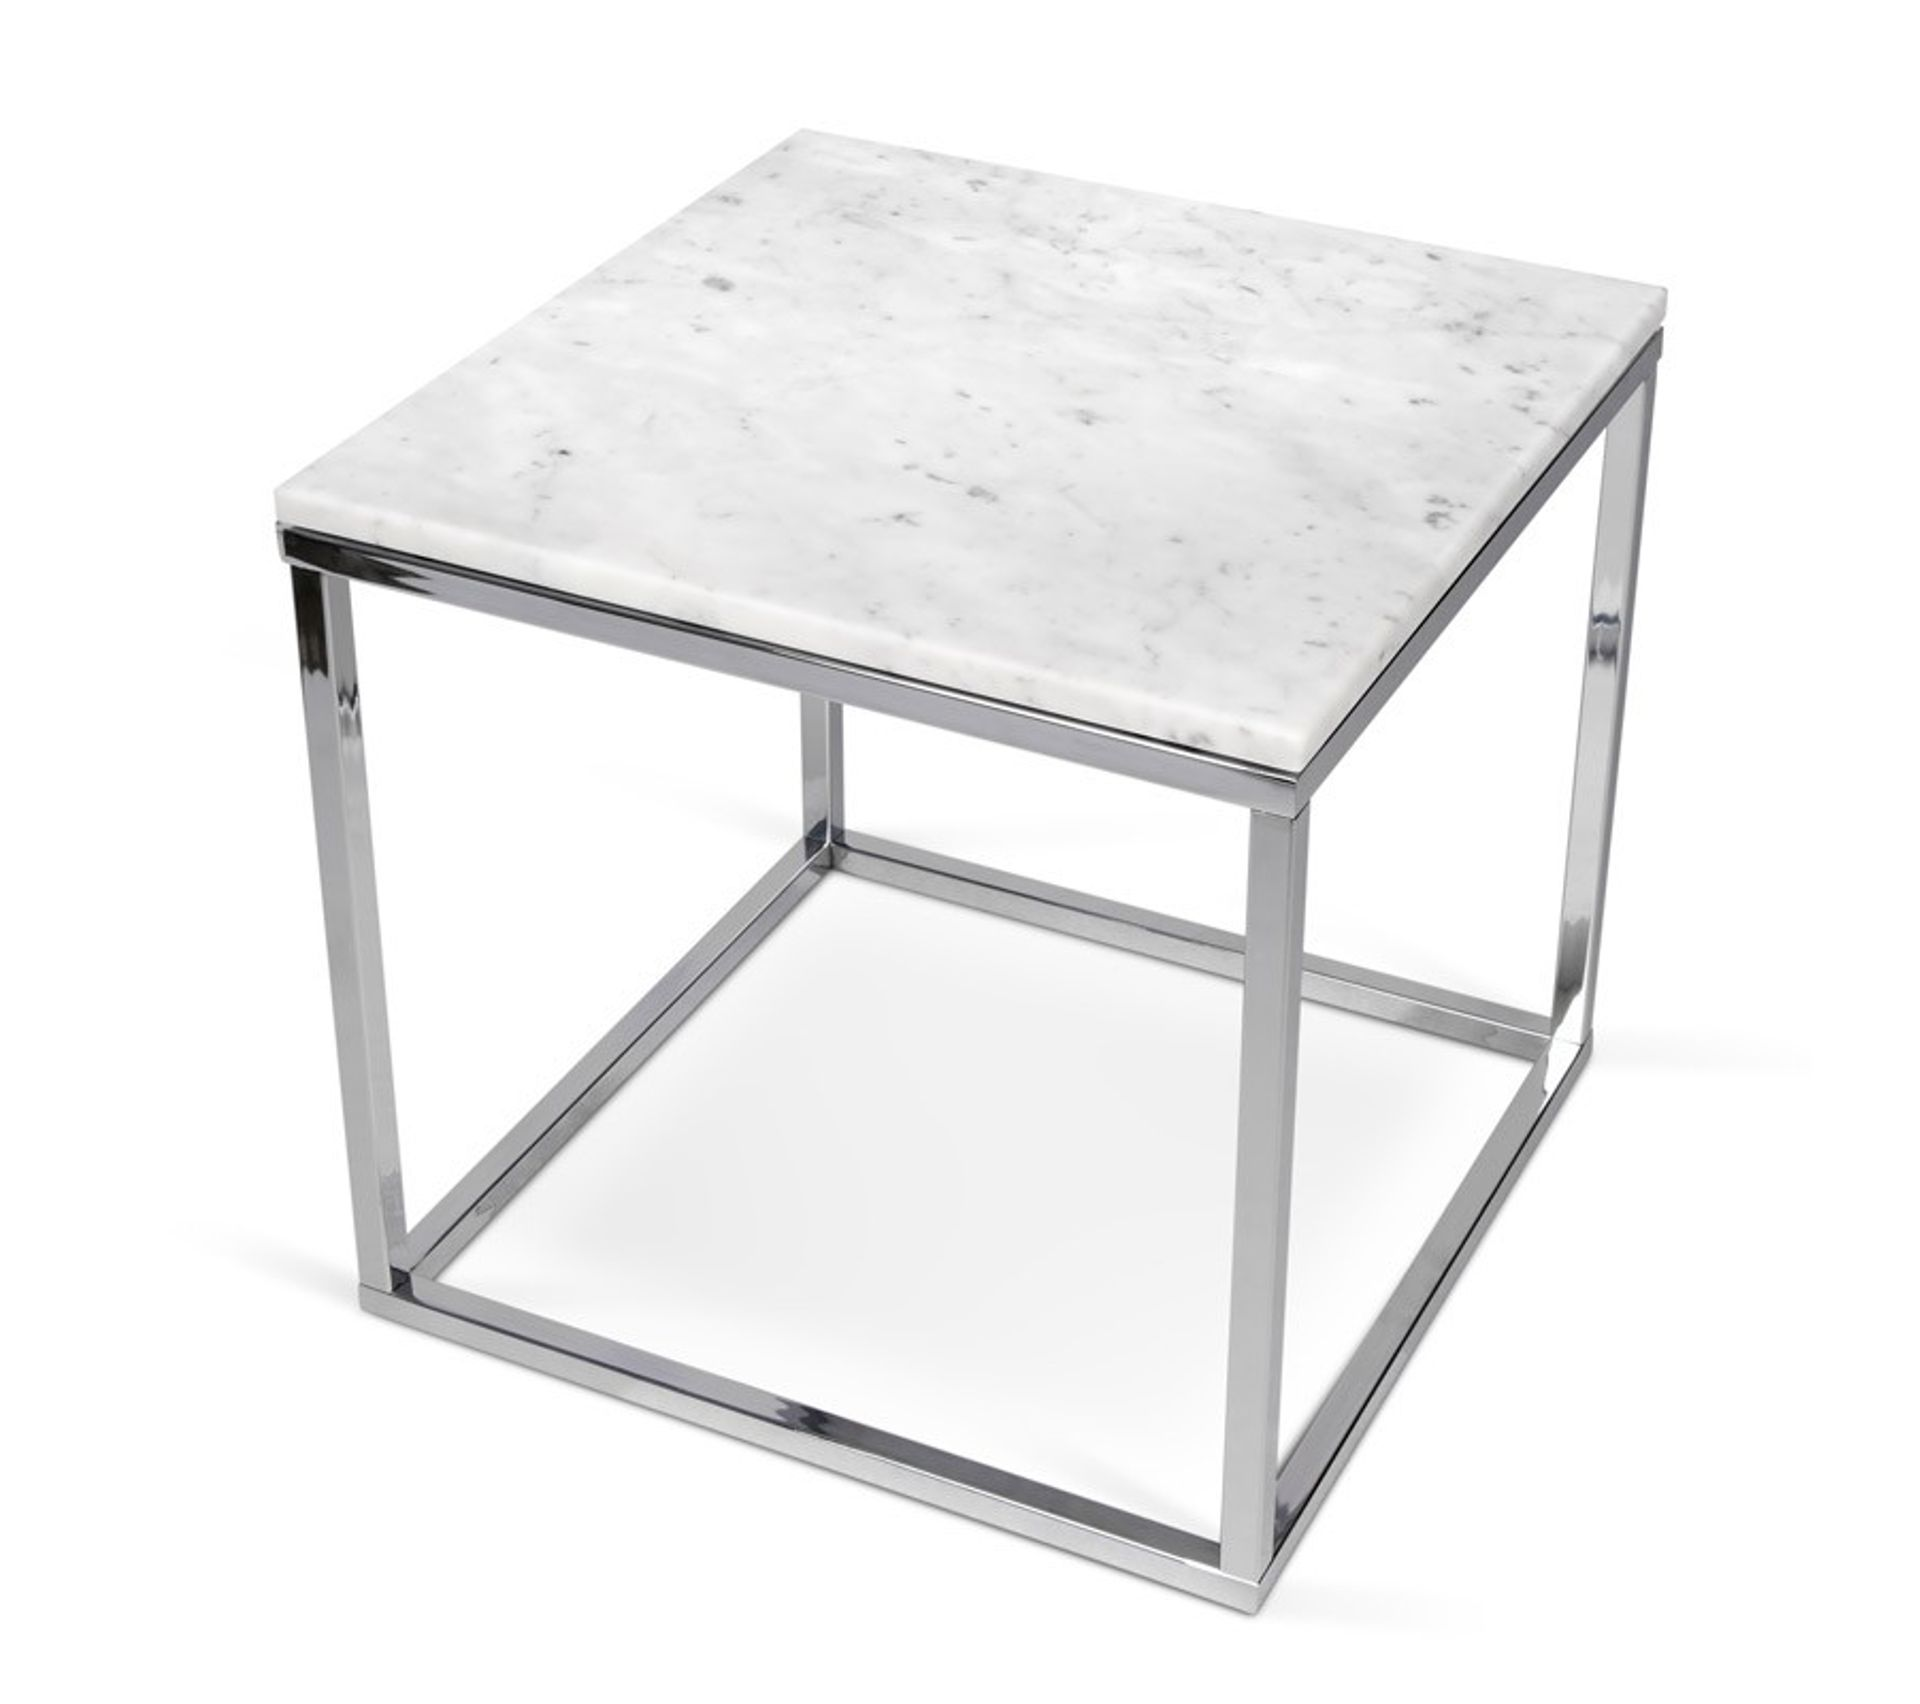 cm Temahome Table Temahome D'appoint 50 76Ybfgy